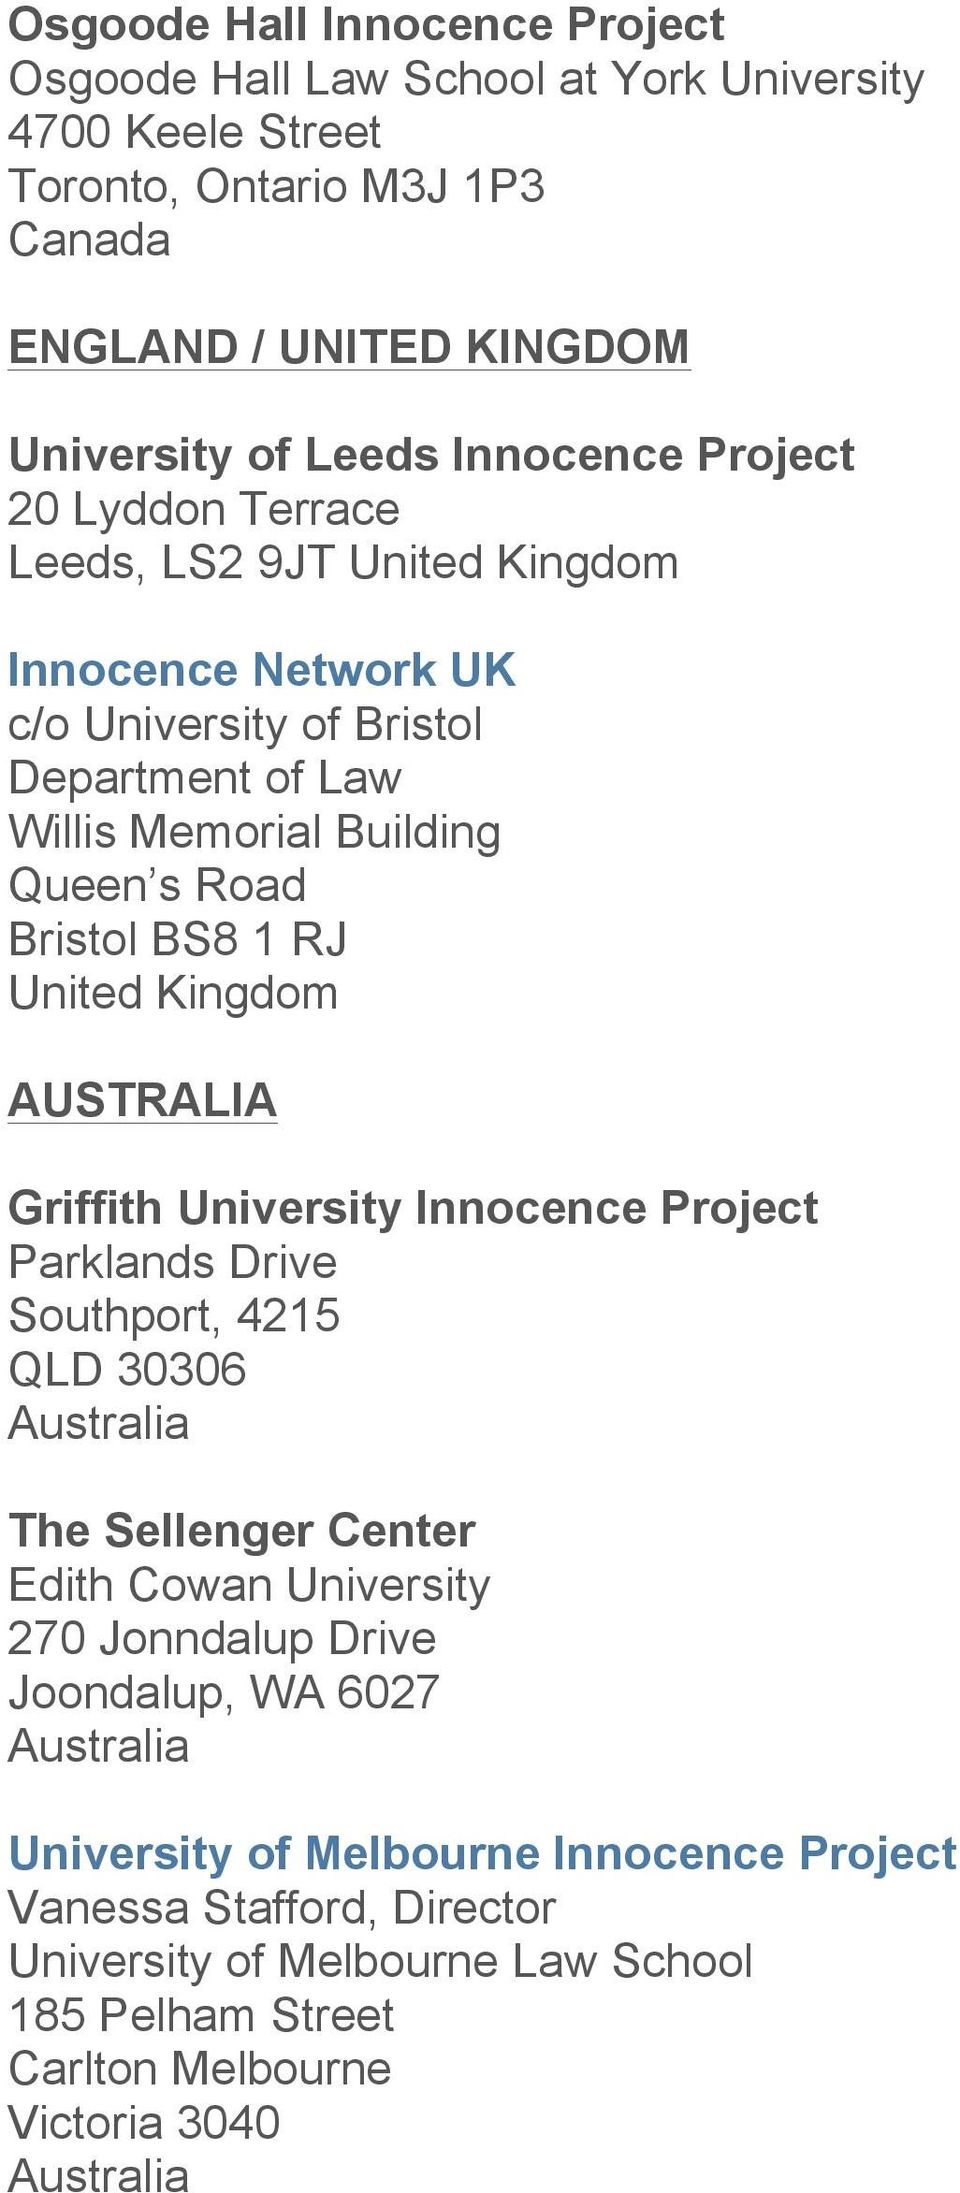 United Kingdom AUSTRALIA Griffith University Innocence Project Parklands Drive Southport, 4215 QLD 30306 Australia The Sellenger Center Edith Cowan University 270 Jonndalup Drive